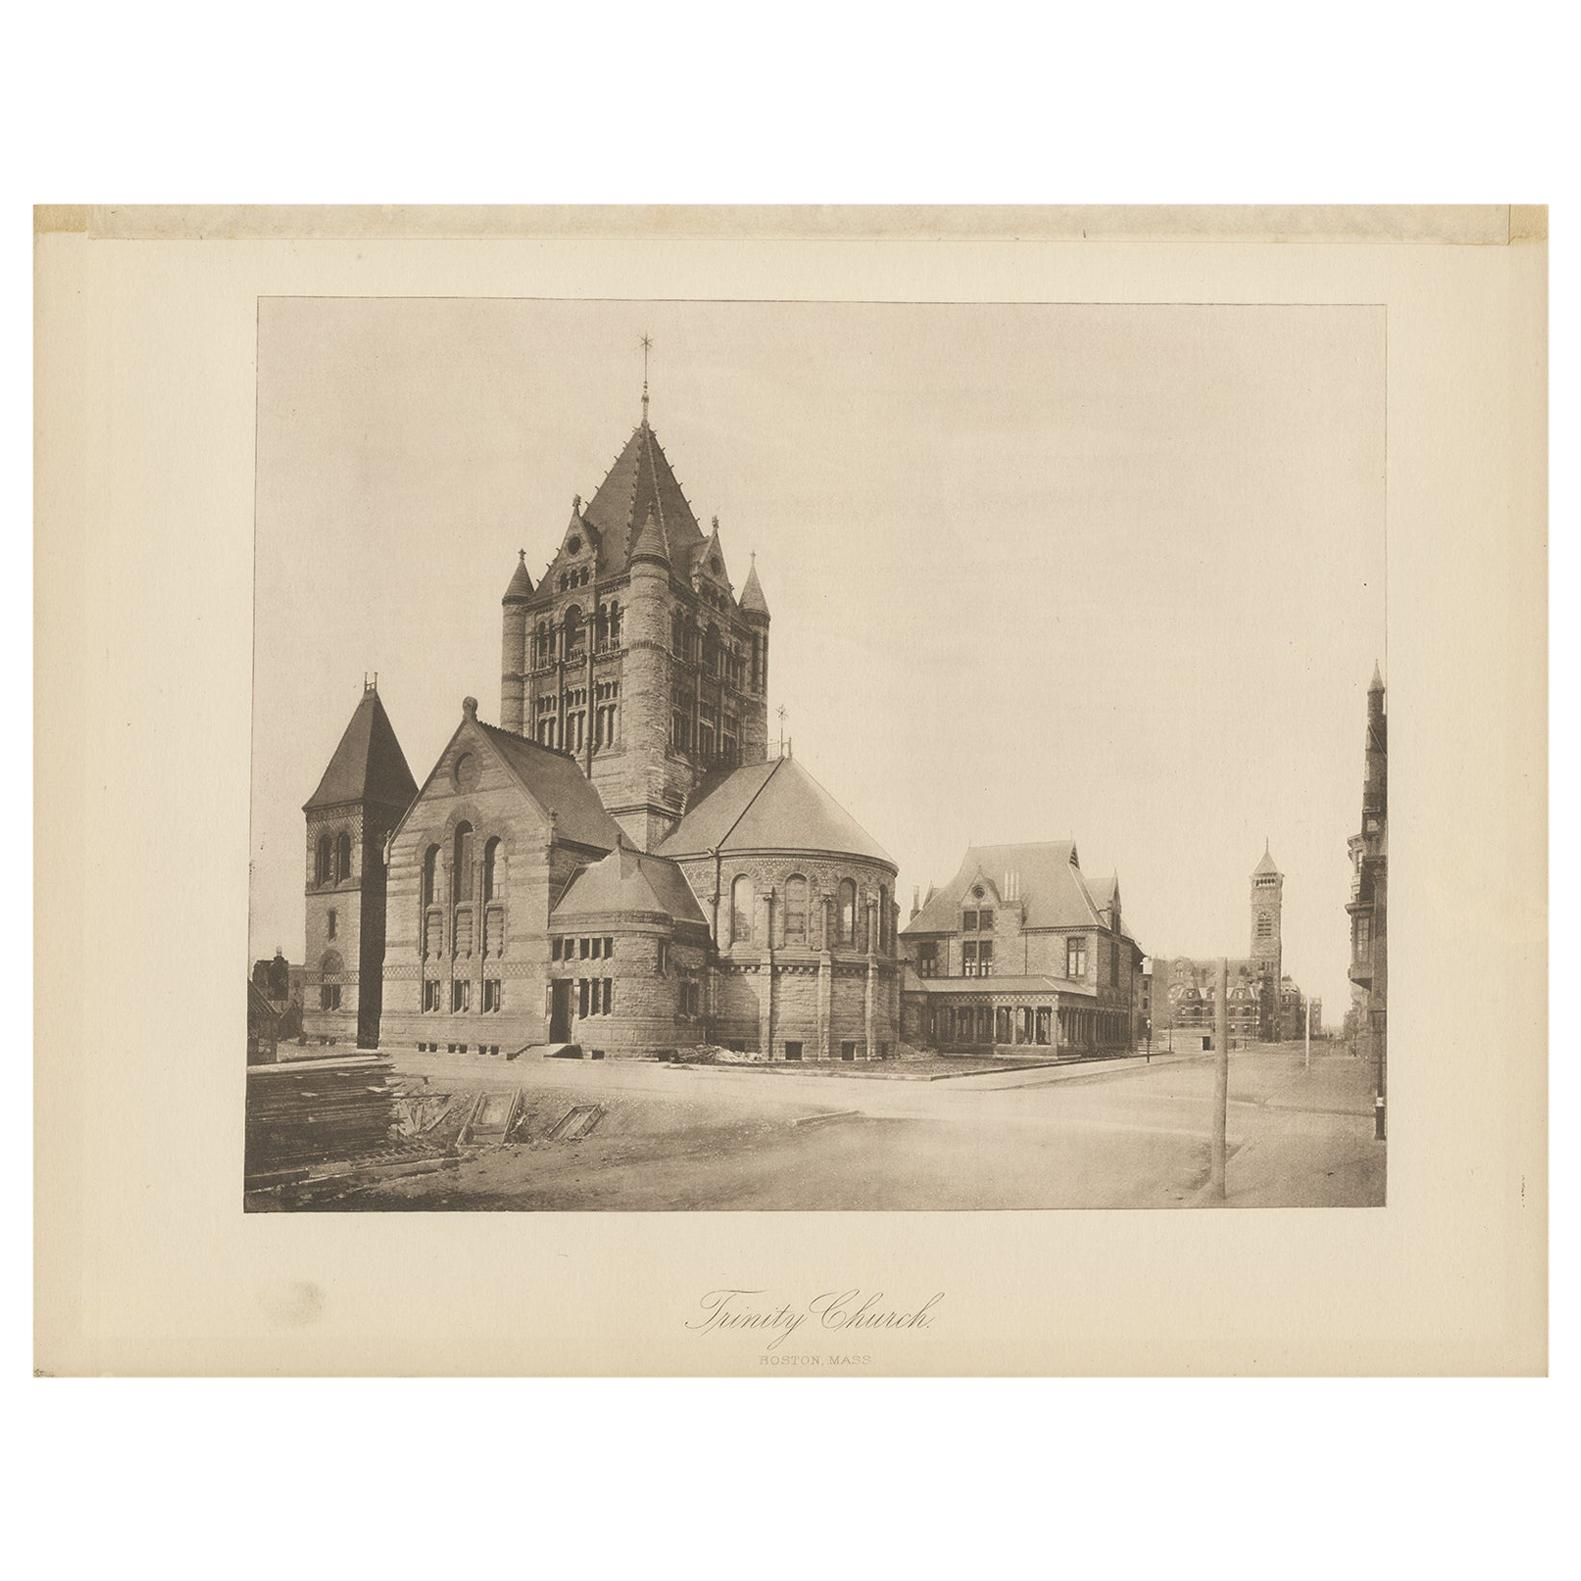 Antique Print of the Trinity Church in the city of Boston, 1887